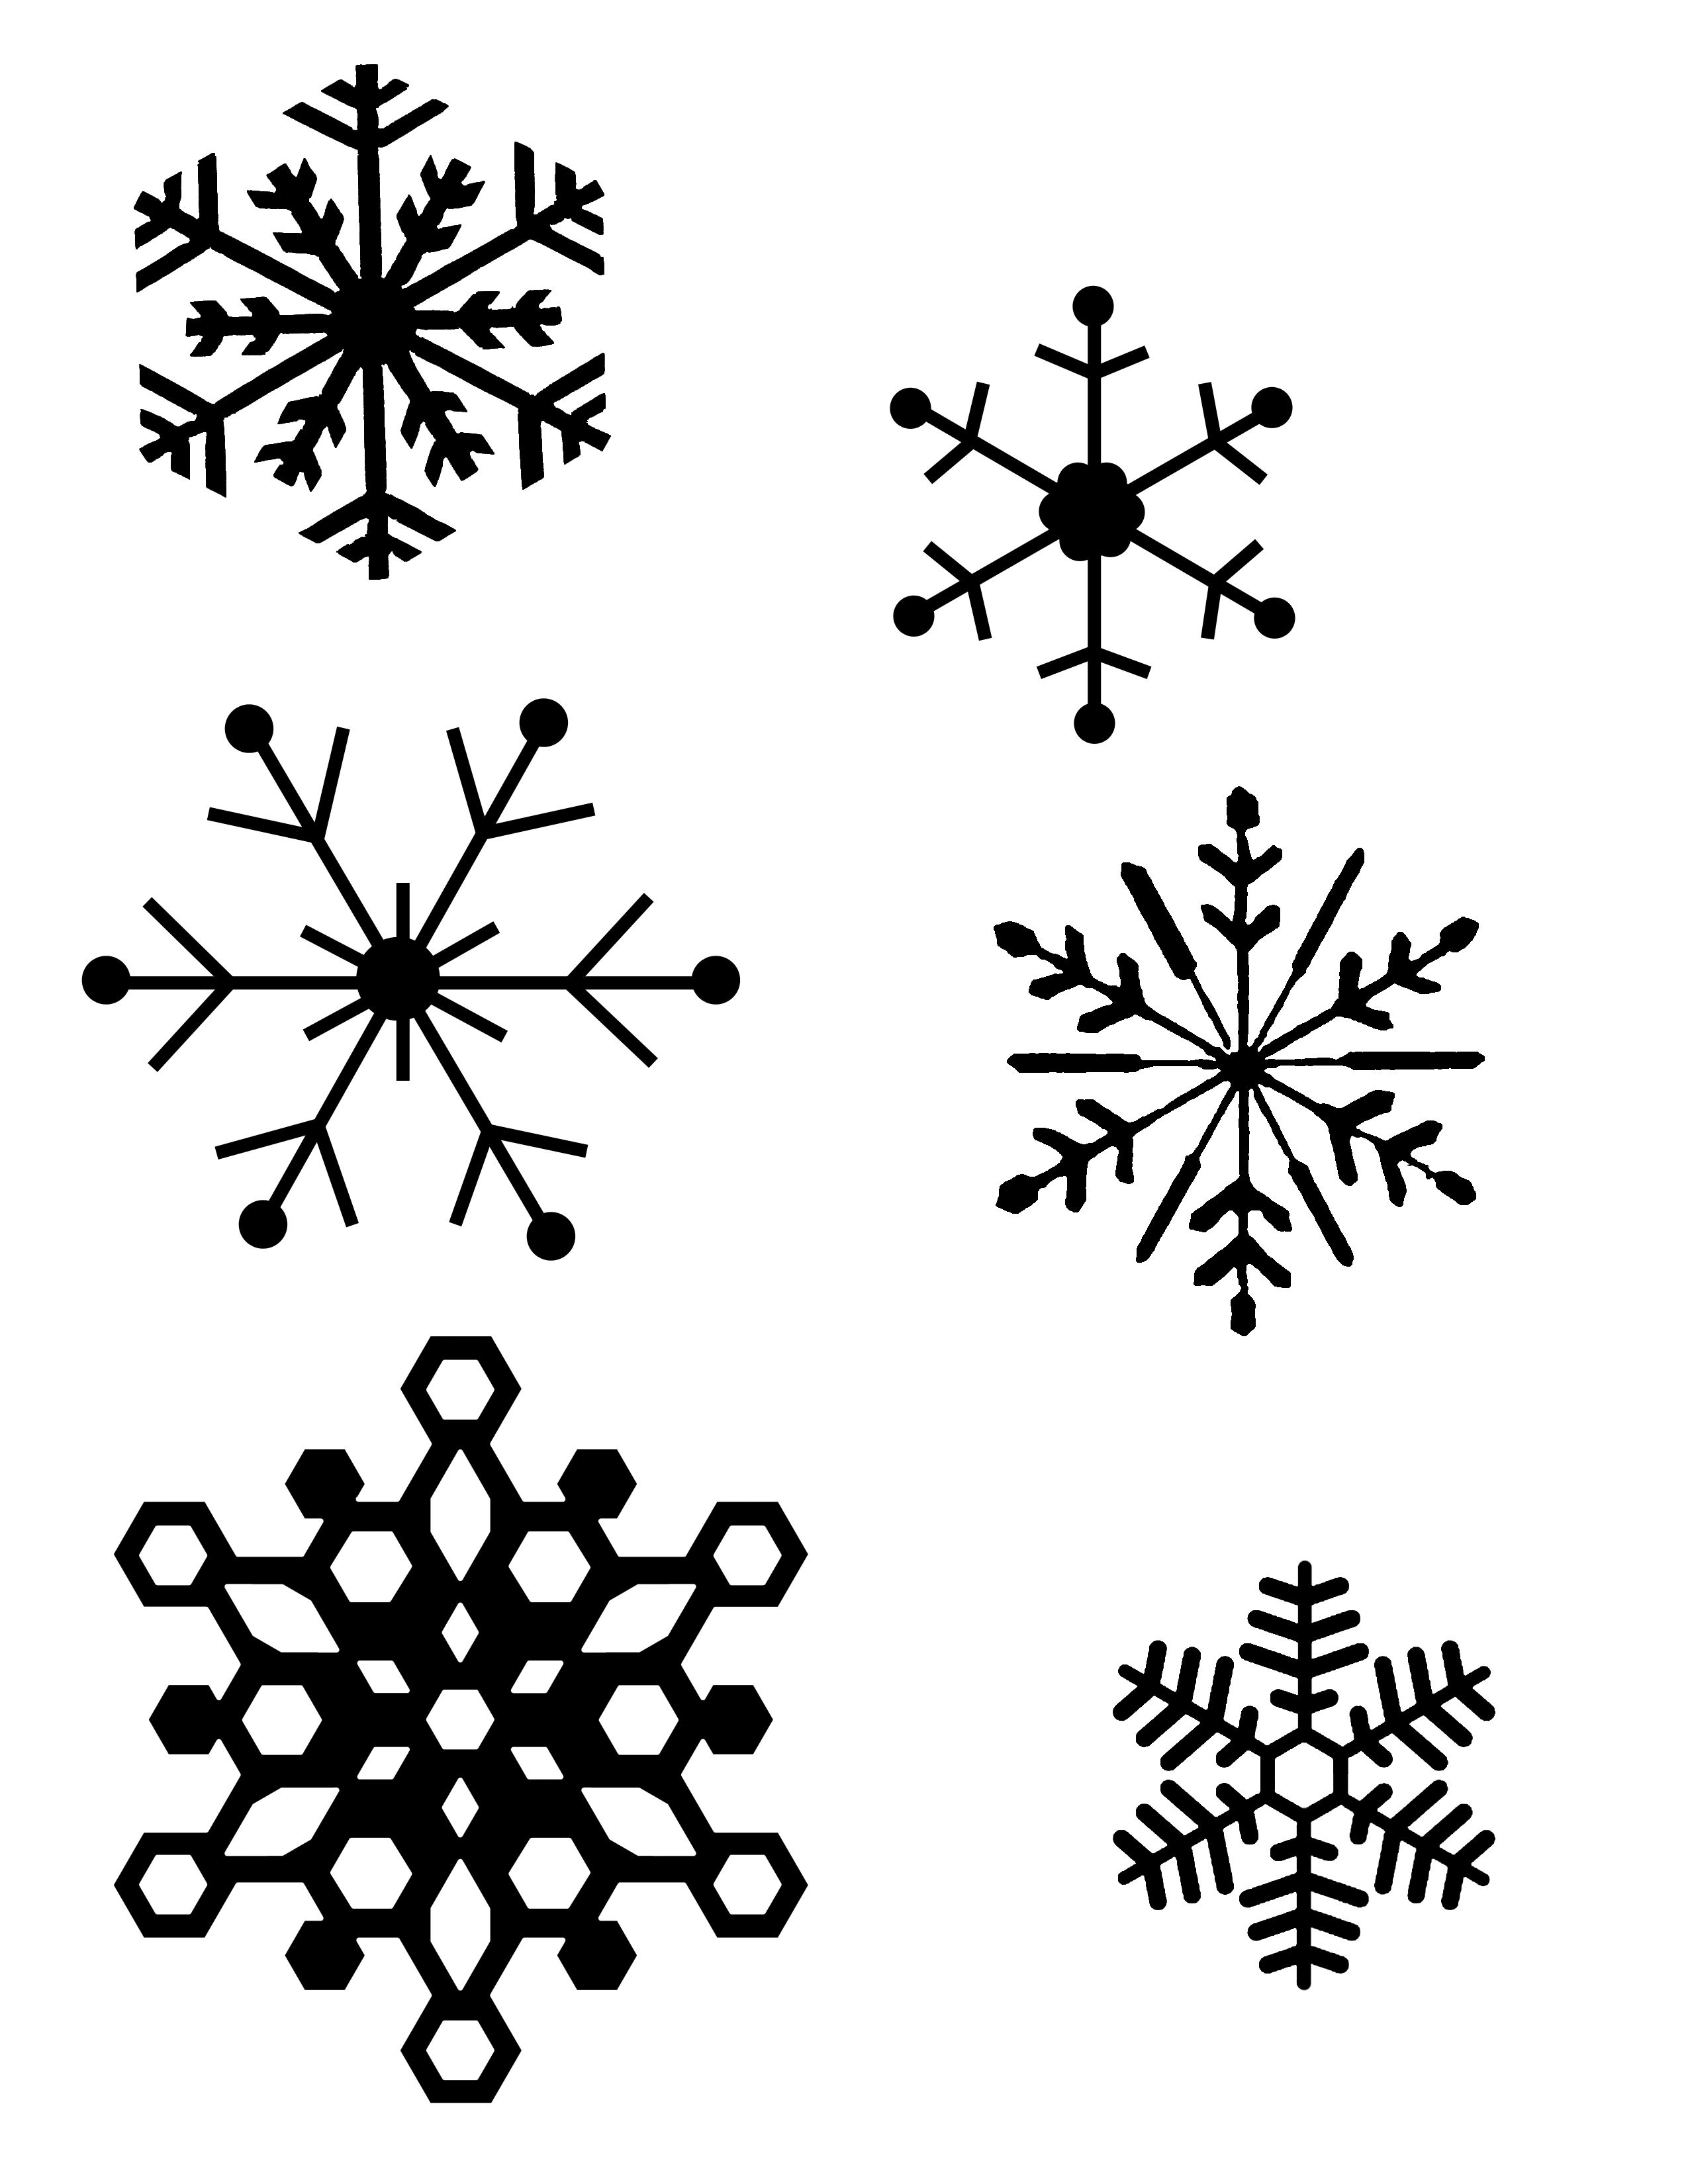 Snowflake Patterns | Polish - Ideas - Free Printable Snowflake Patterns